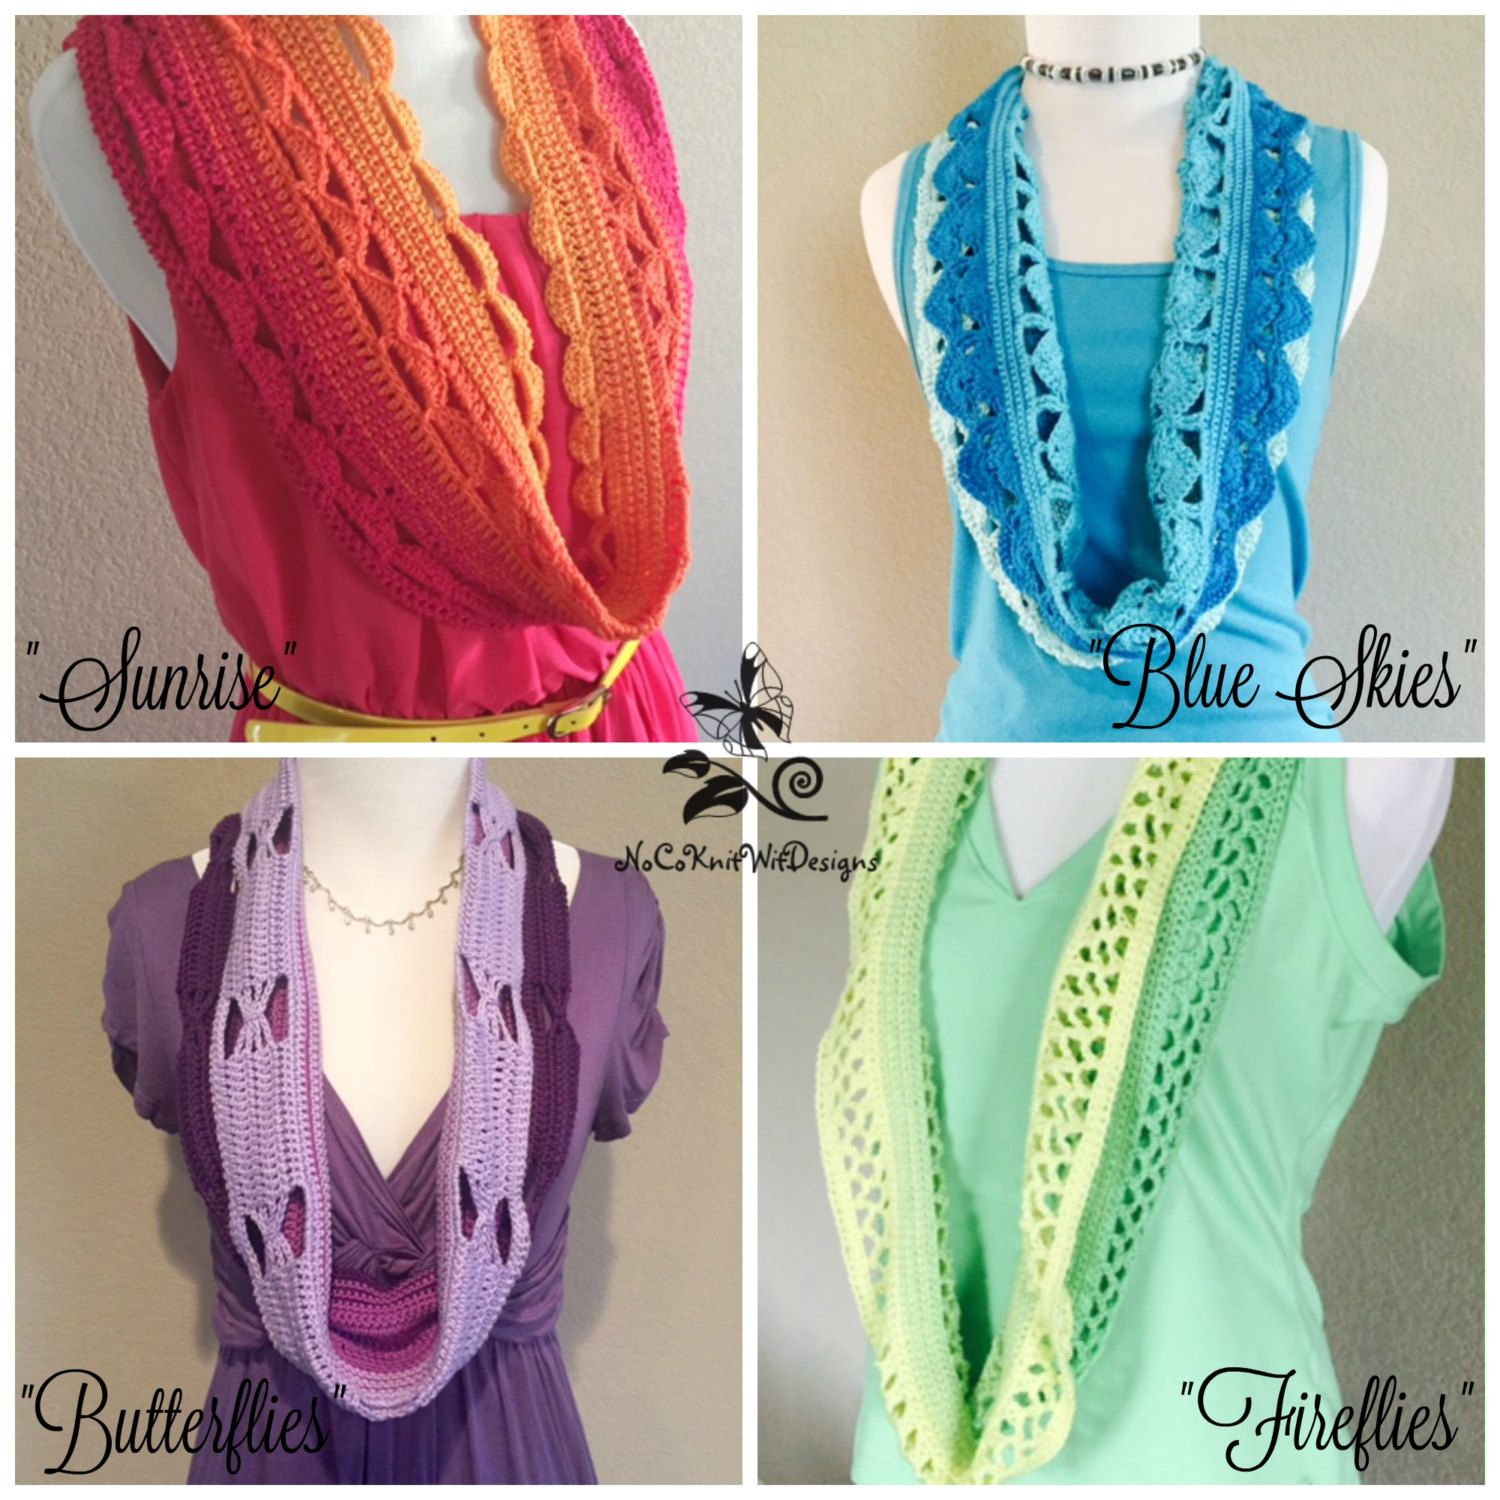 Crochet Scarf Pattern 4 Pack | Ombre Scarf Patterns | Spring ...